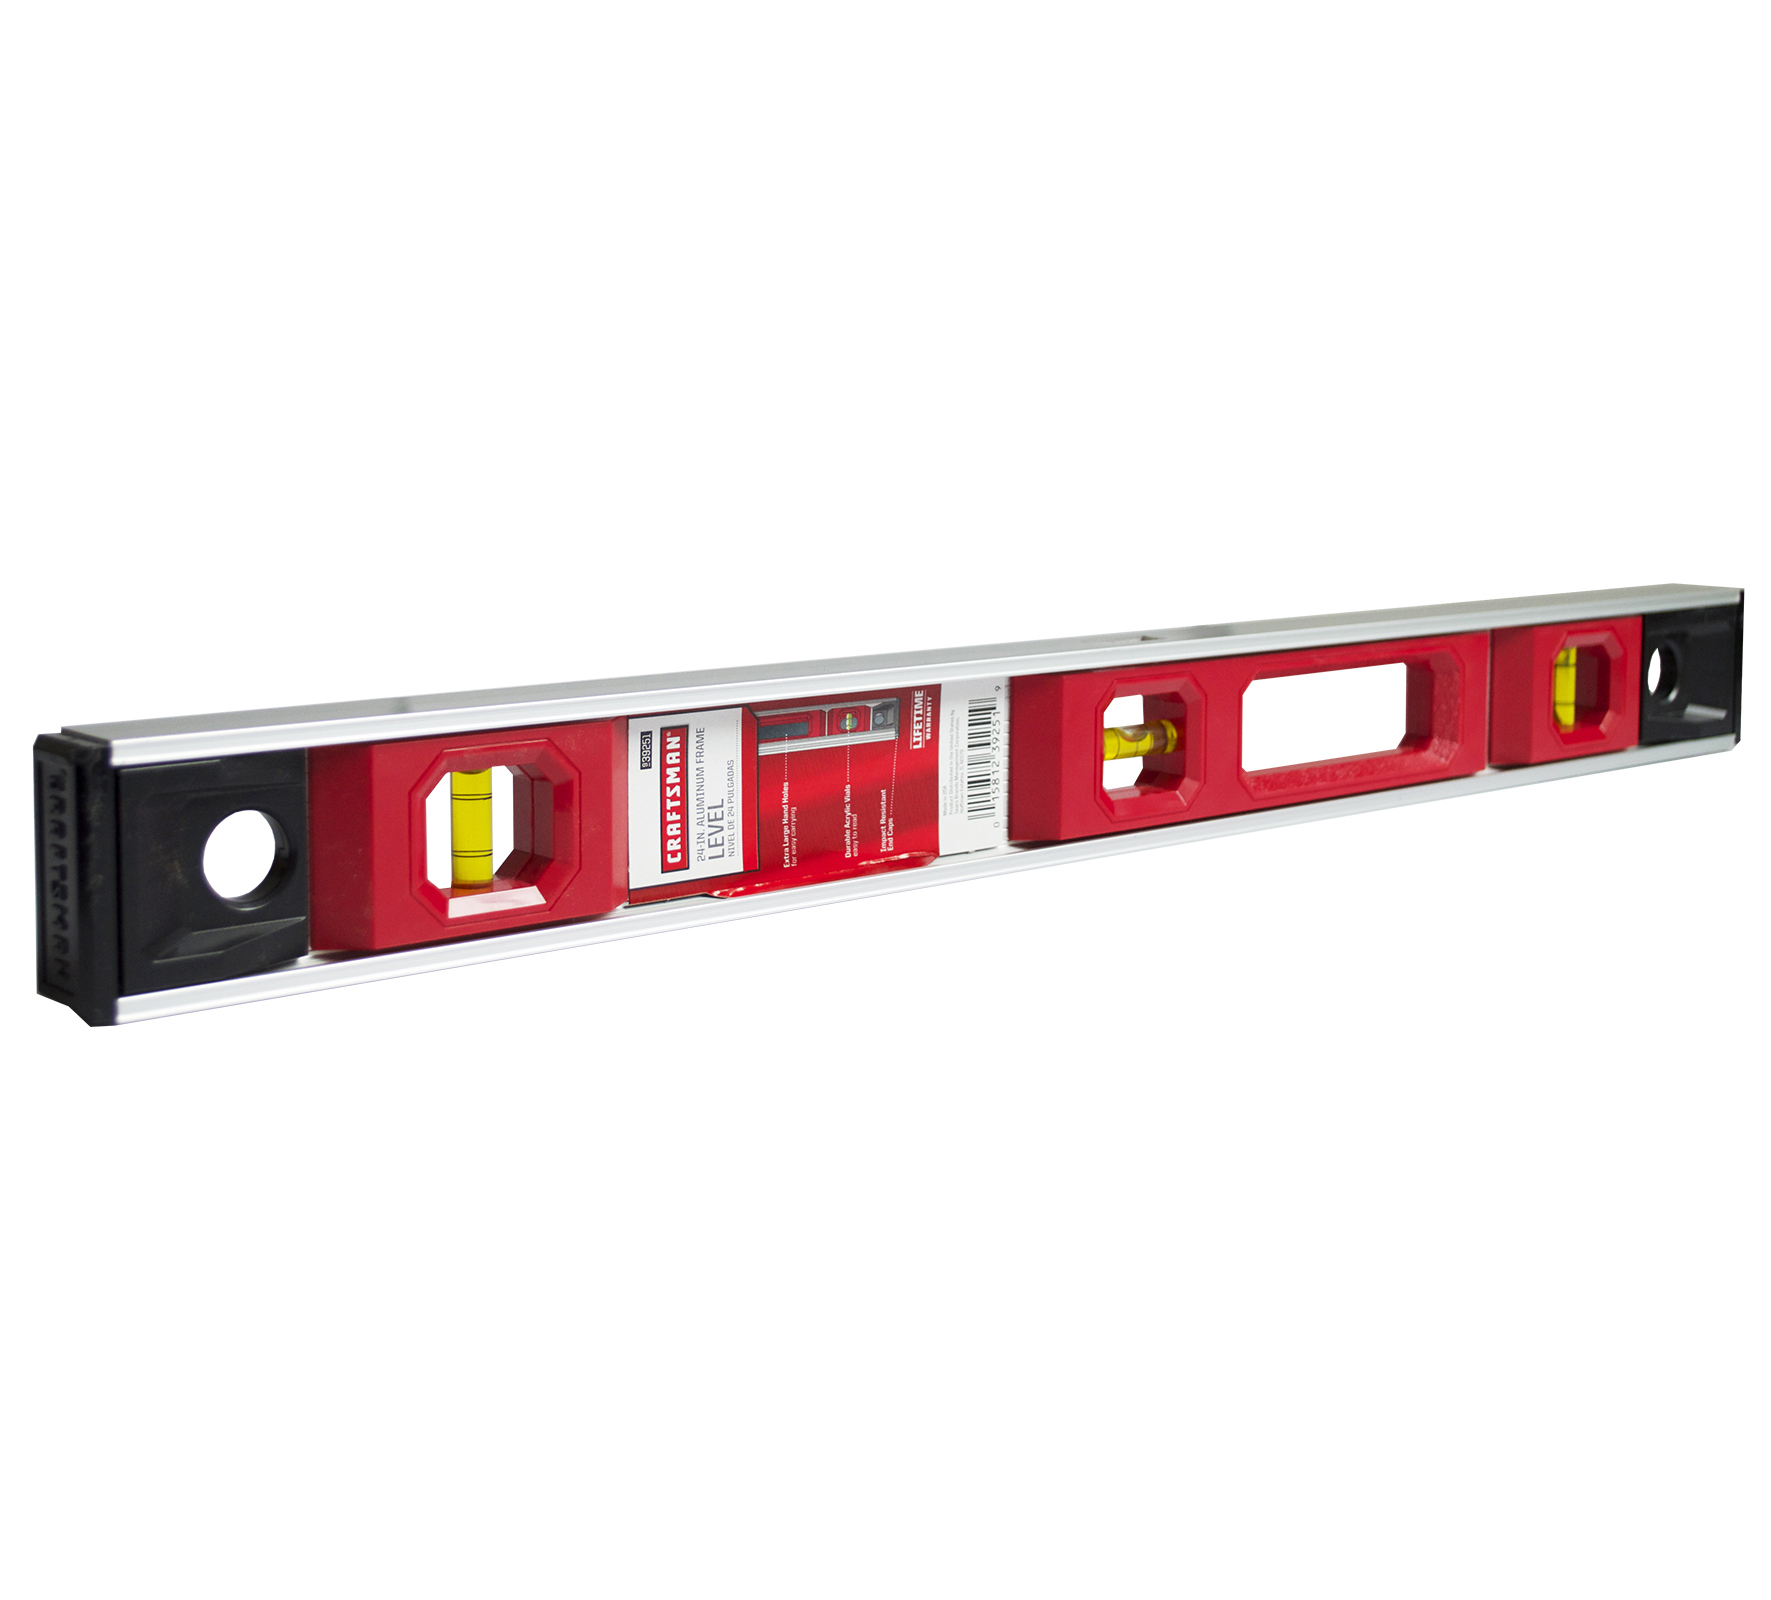 Craftsman 24 in. Aluminum Level